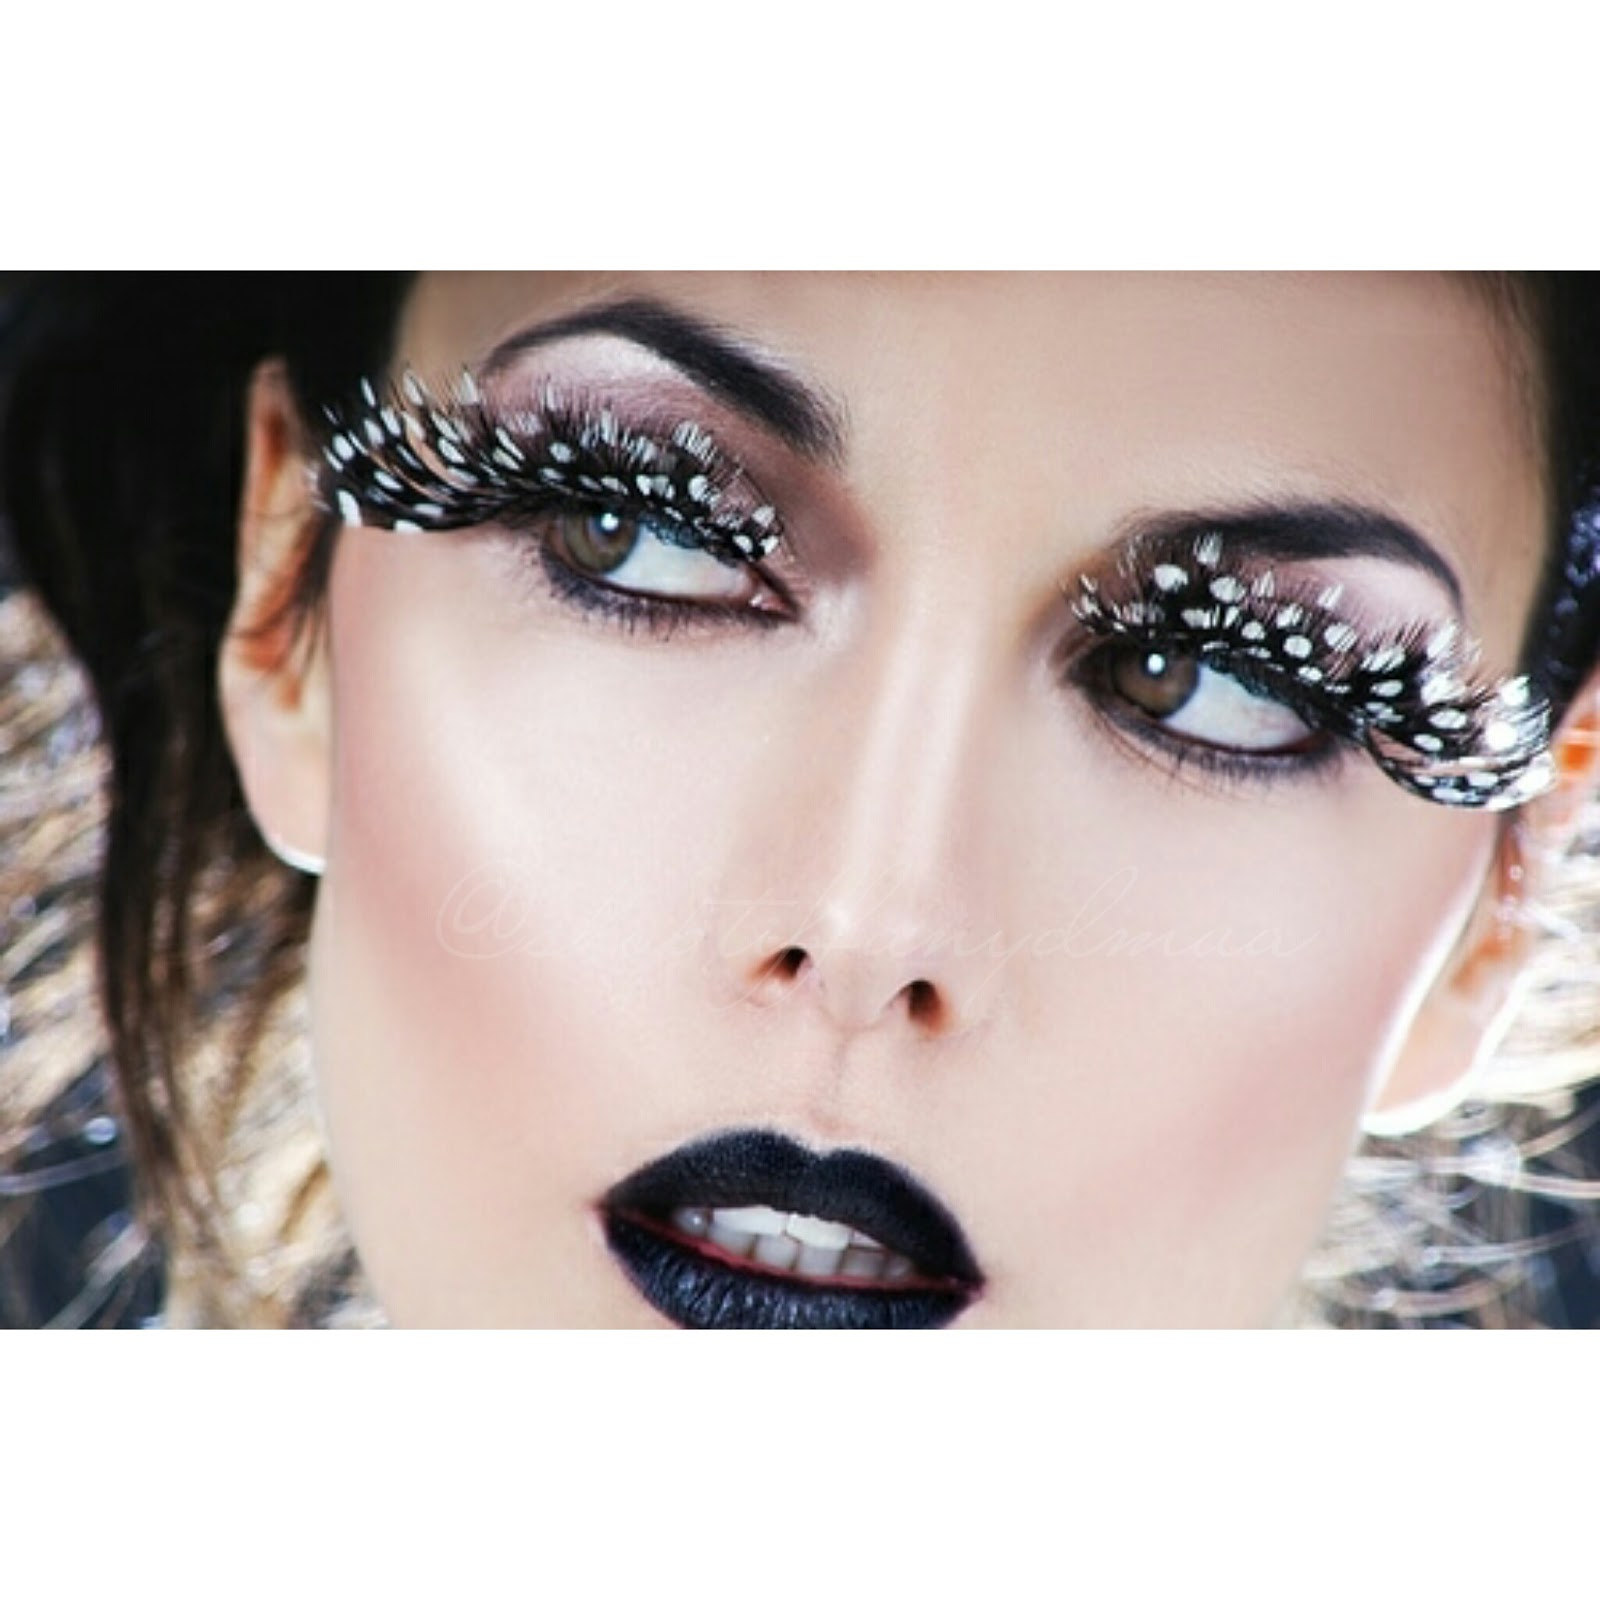 Feathered Lashes Makeup Topsimages